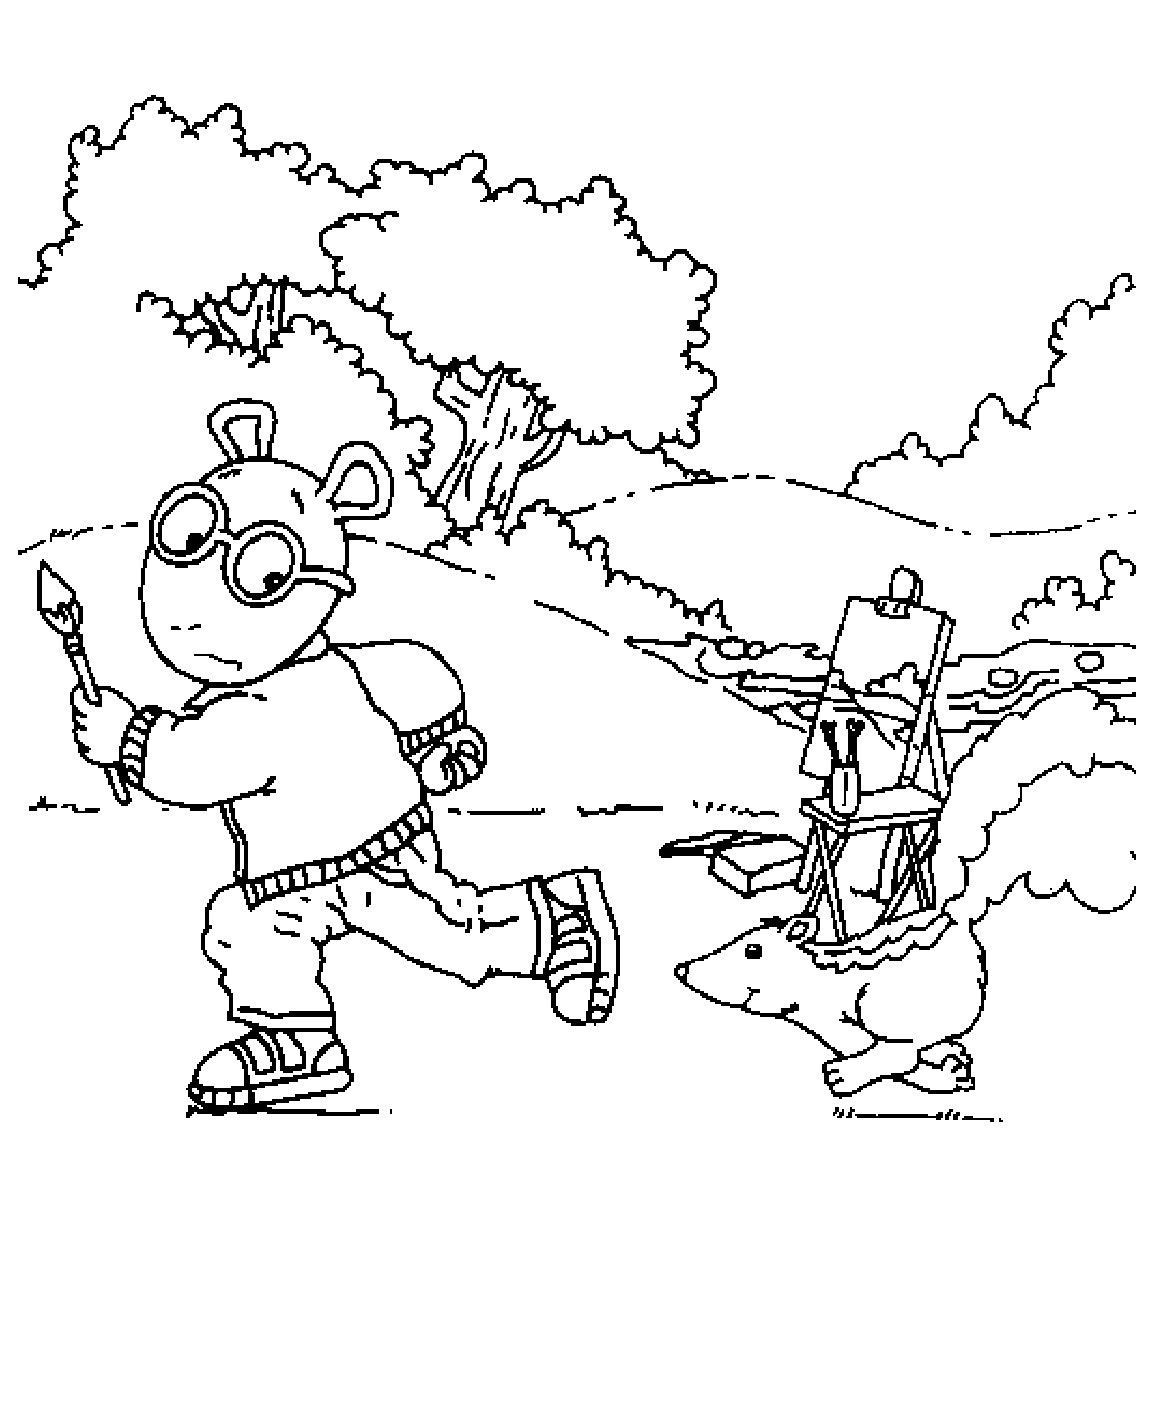 arthur christmas coloring pages arthur christmas coloring pages coloring home arthur coloring christmas pages